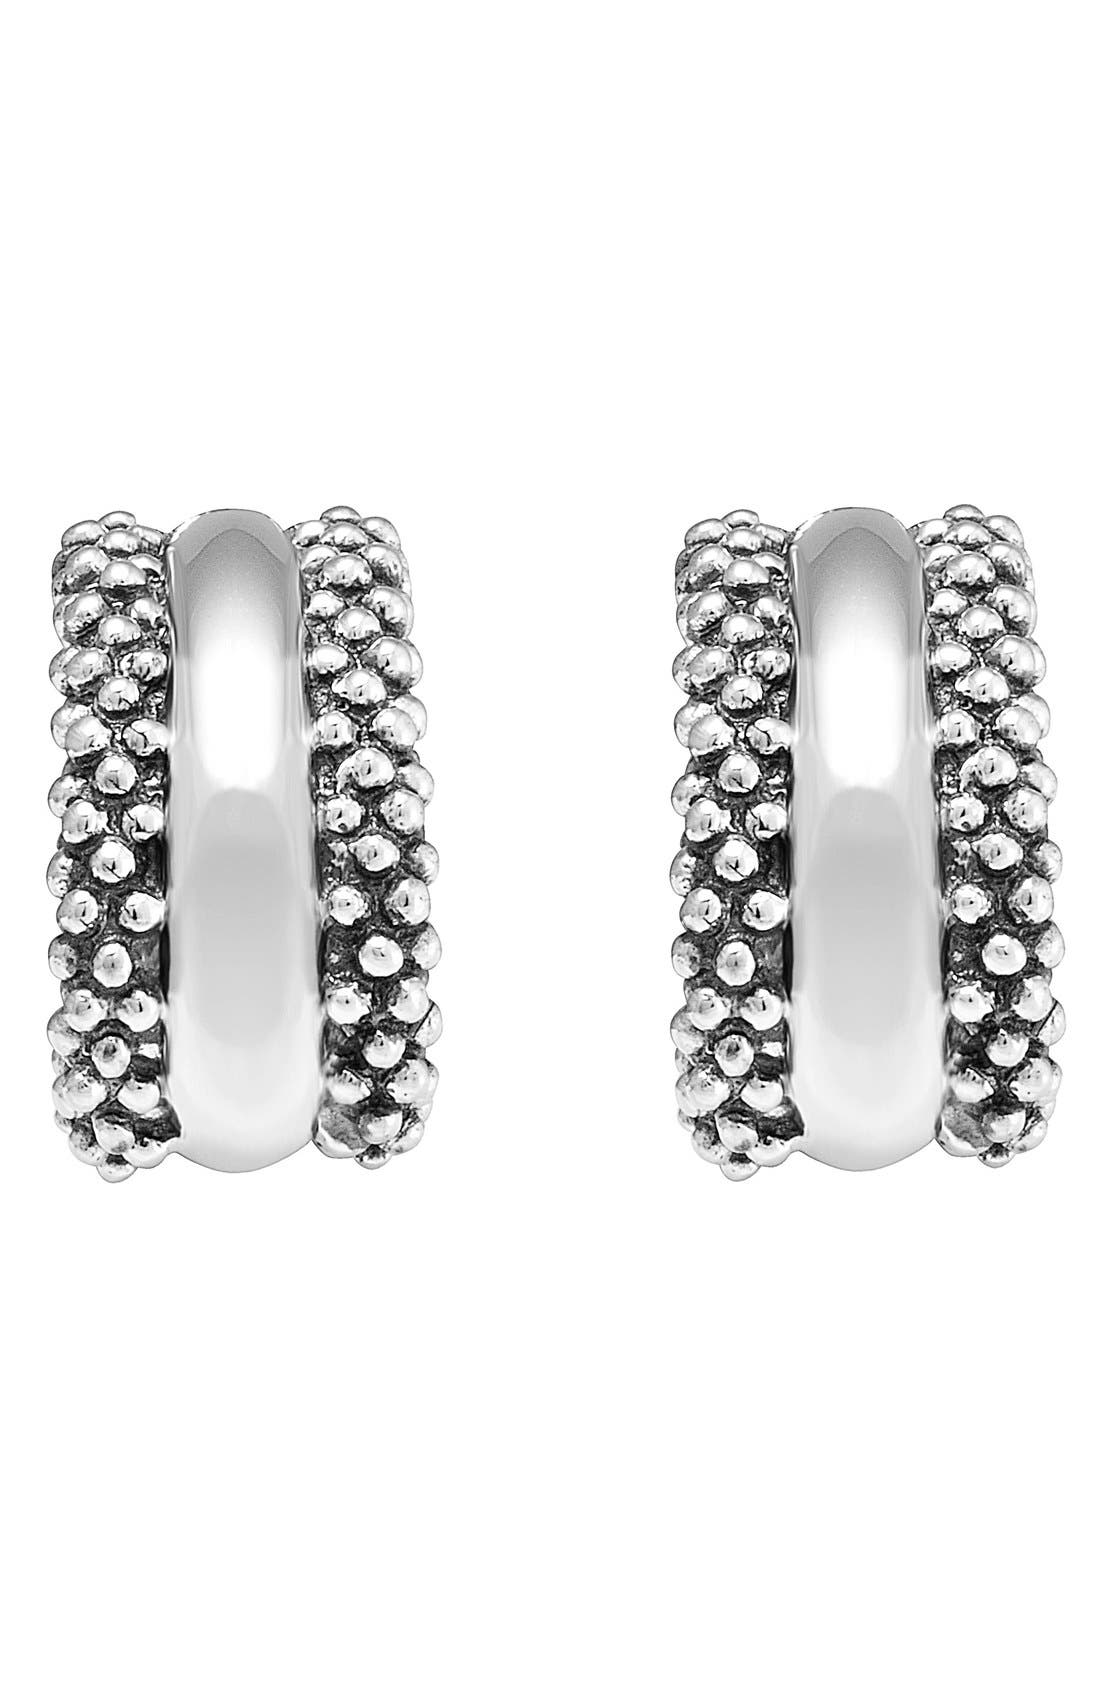 Caviar<sup>™</sup> Sterling Silver Hoop Earrings,                             Alternate thumbnail 3, color,                             STERLING SILVER